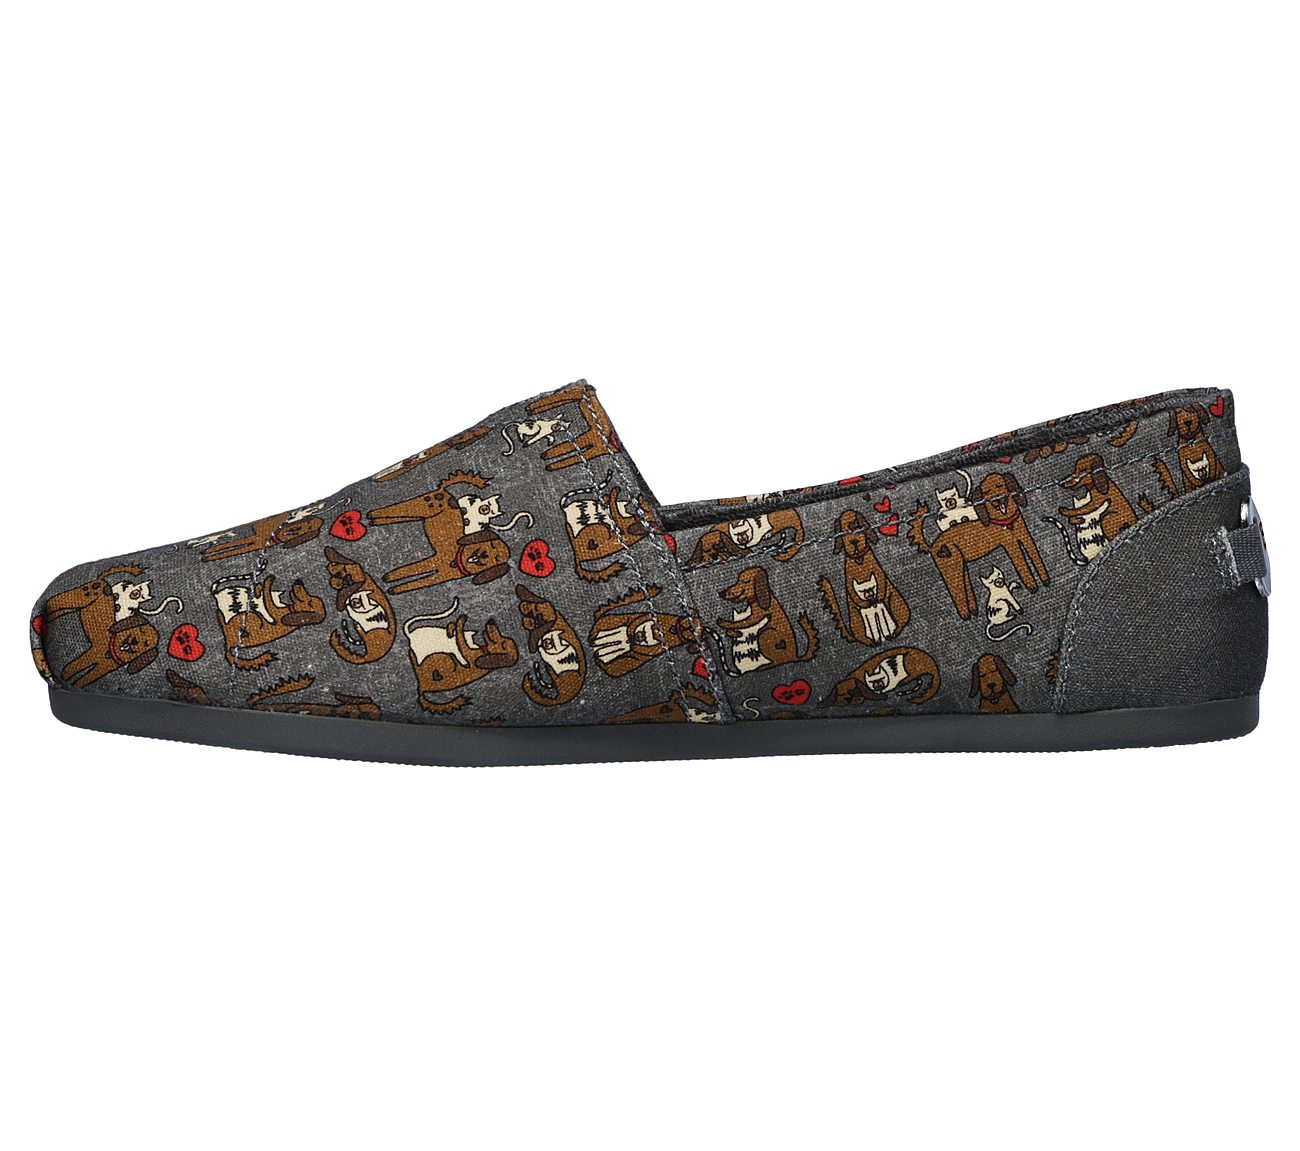 28ae3e265868 Buy SKECHERS BOBS Plush - Puppy Love BOBS Shoes only $45.00